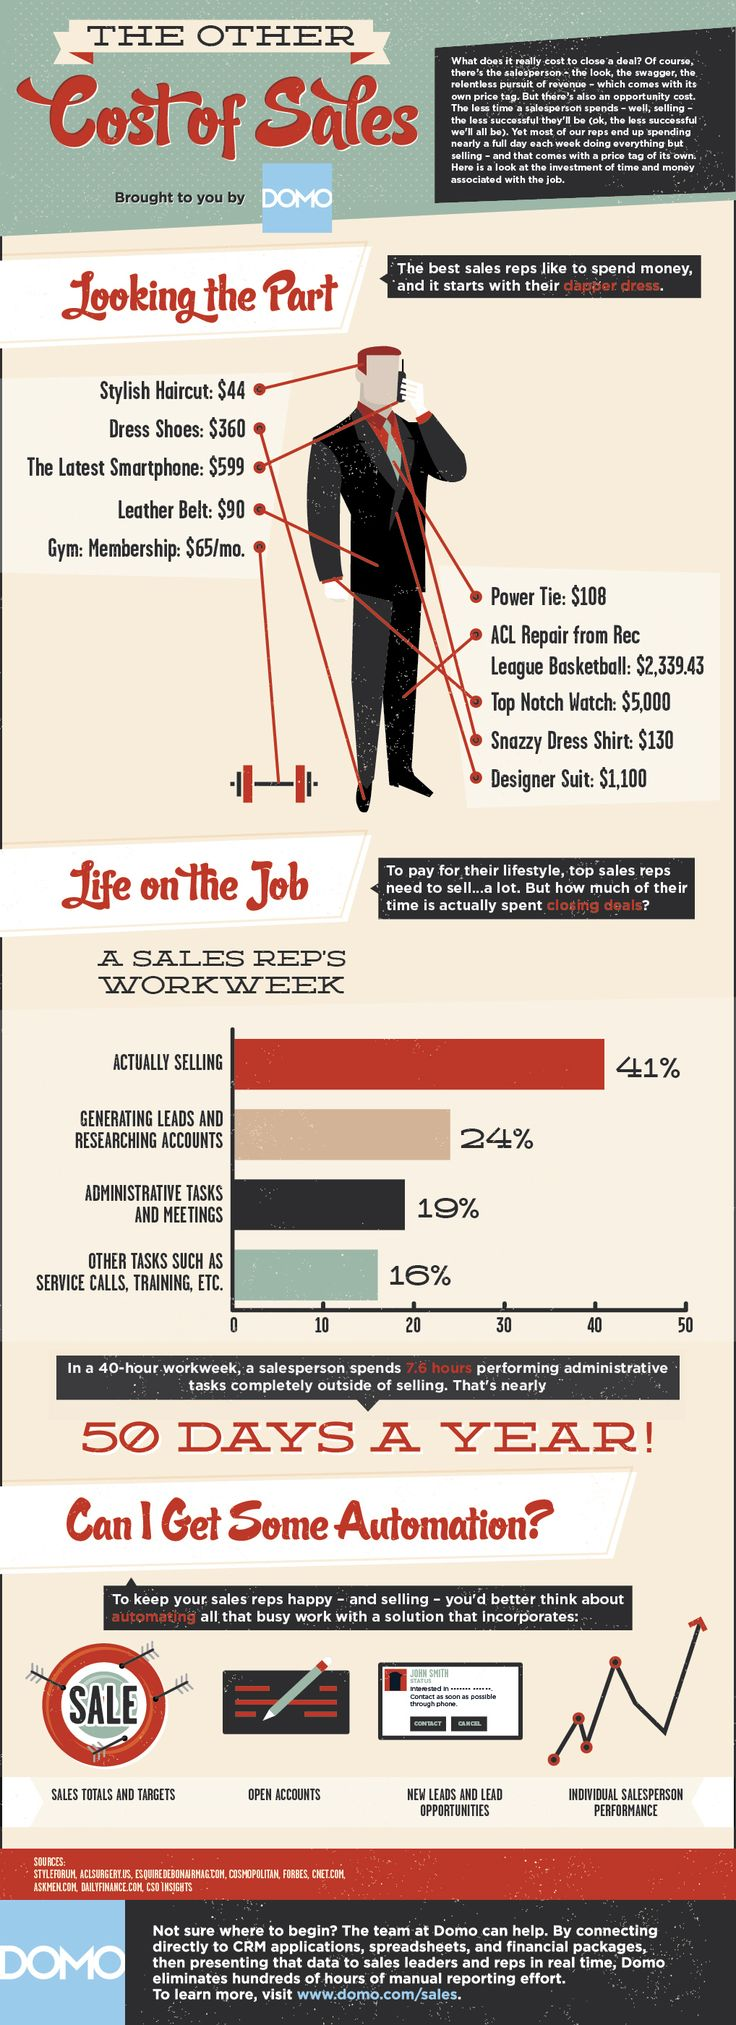 The other cost of sales #infographic